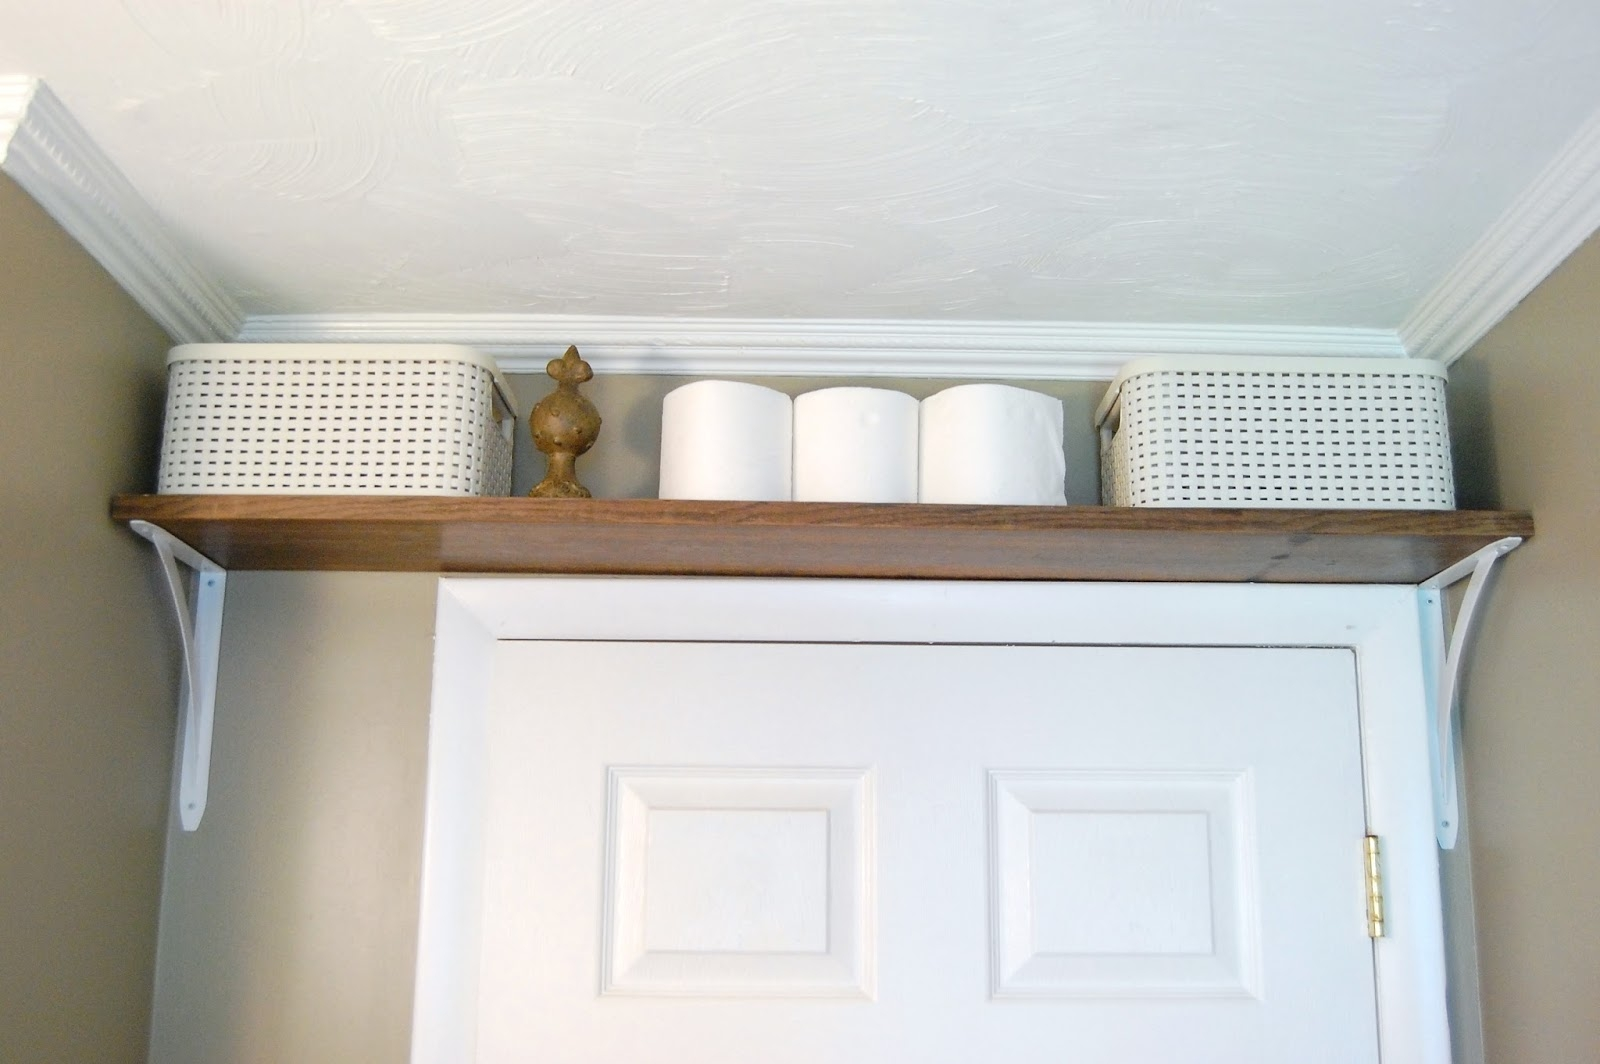 Over The Door Shelves For Bathroomstoragespace solutions for a galley bathroom ask metafilter